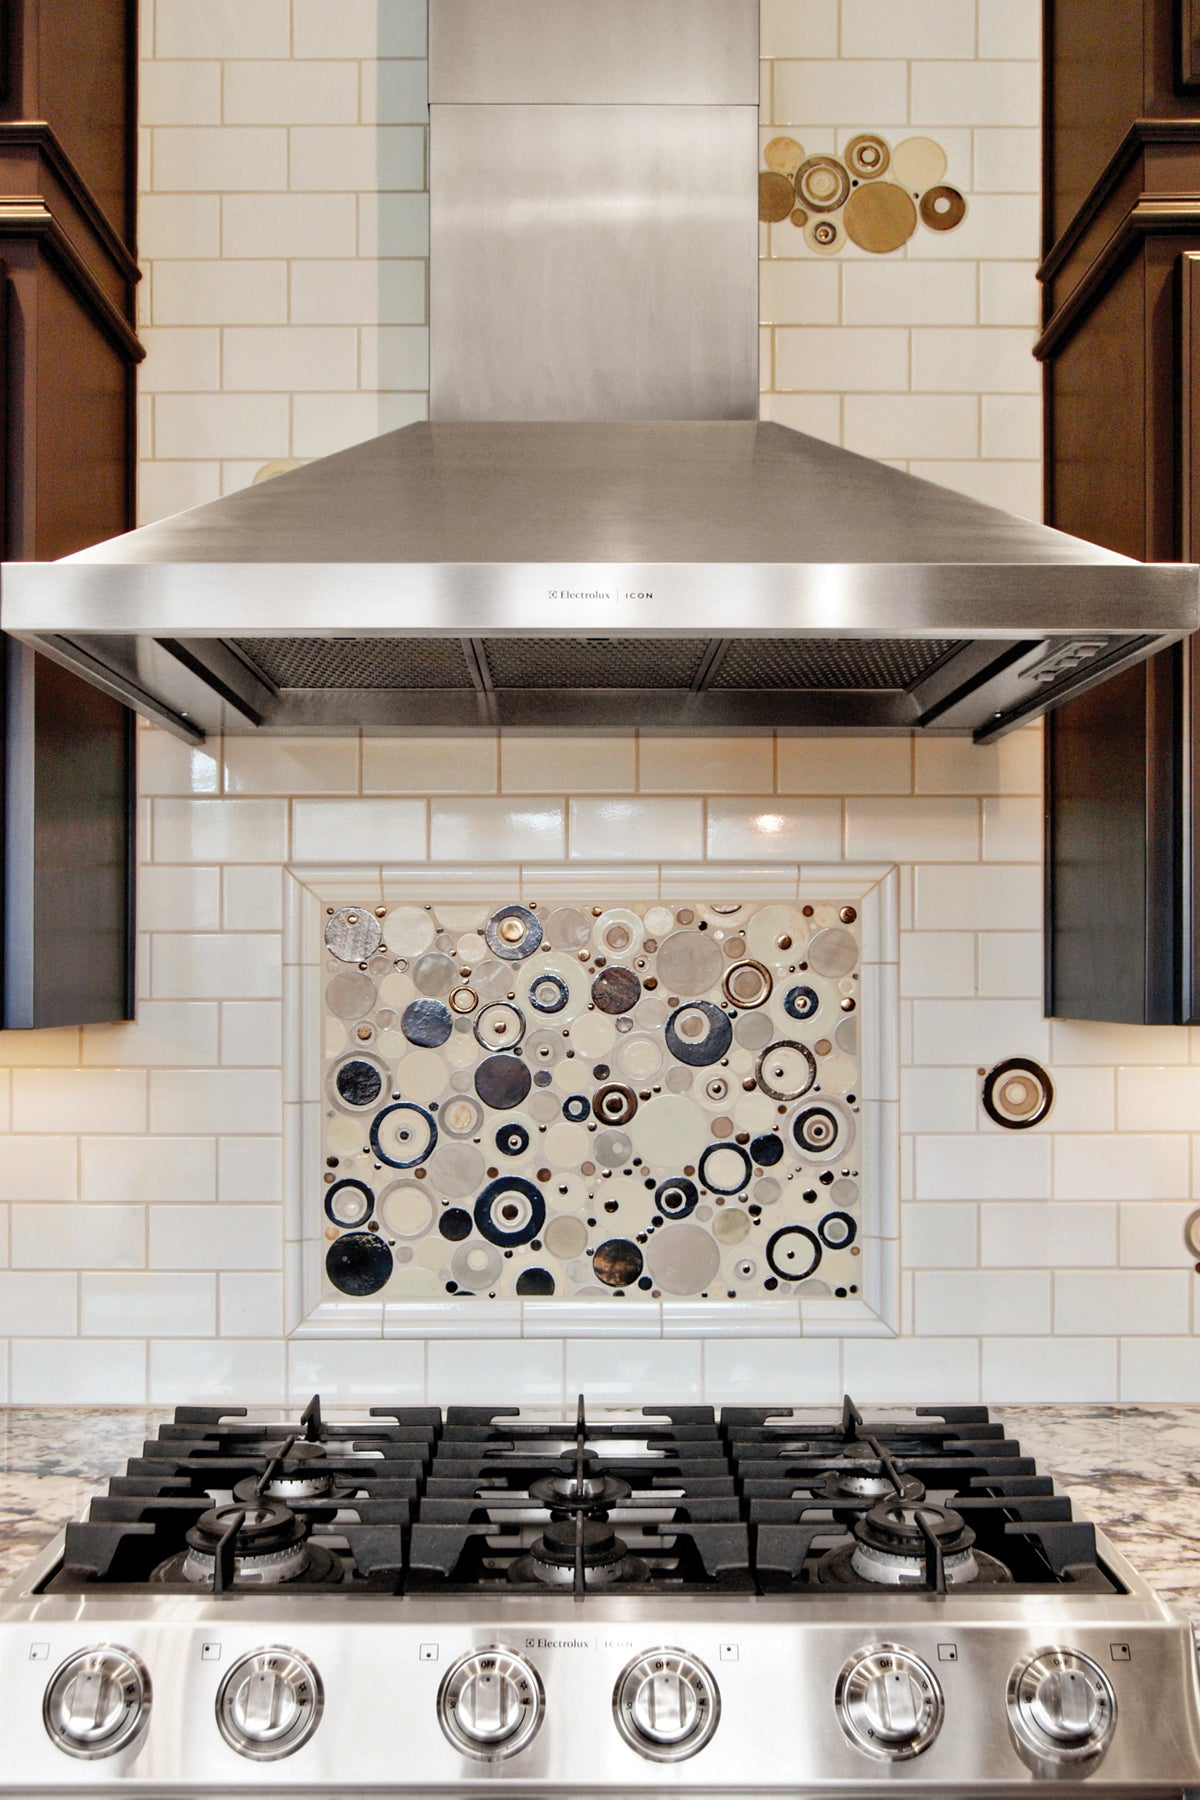 5-Stunning-Stove-Splashes 5 Stunning Stove Splashes Your Kitchen Needs All Kitchens Tile Inspiration   CitrusModernKitchen 5 Stunning Stove Splashes Your Kitchen Needs All Kitchens Tile Inspiration   Annie-Henderson-WEB-8 5 Stunning Stove Splashes Your Kitchen Needs All Kitchens Tile Inspiration   Ball-web 5 Stunning Stove Splashes Your Kitchen Needs All Kitchens Tile Inspiration